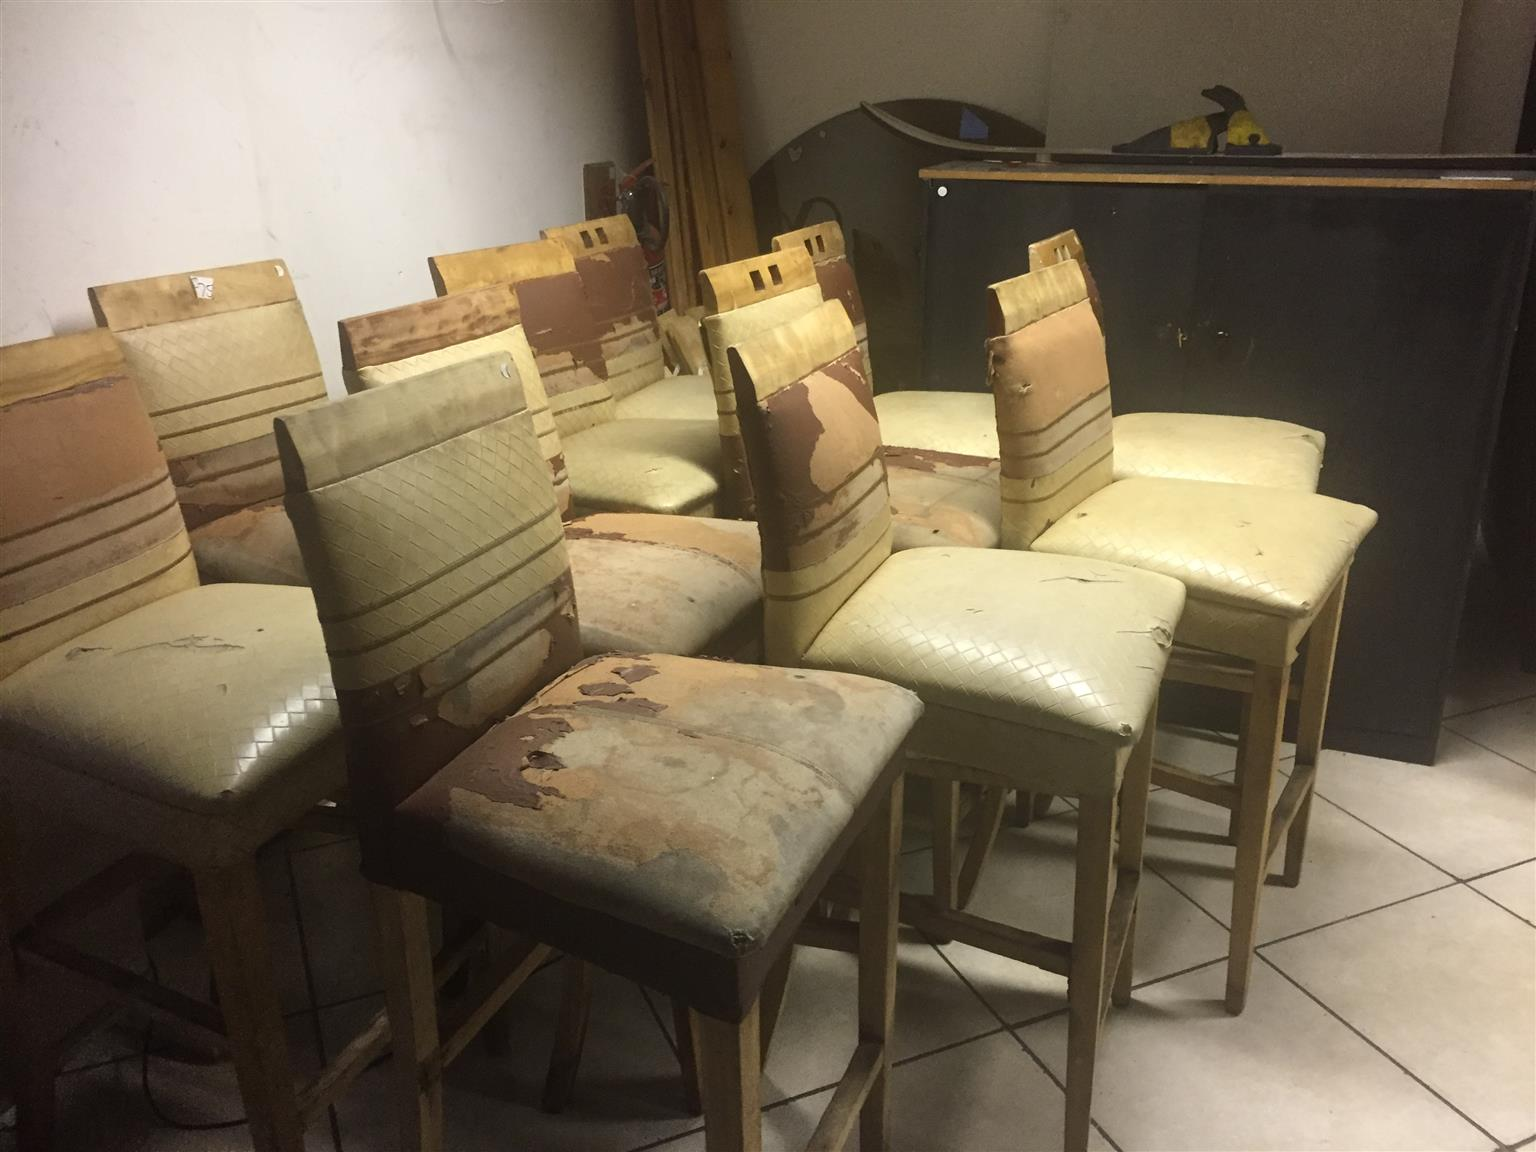 12 Bar Chairs in Need of Upholstery